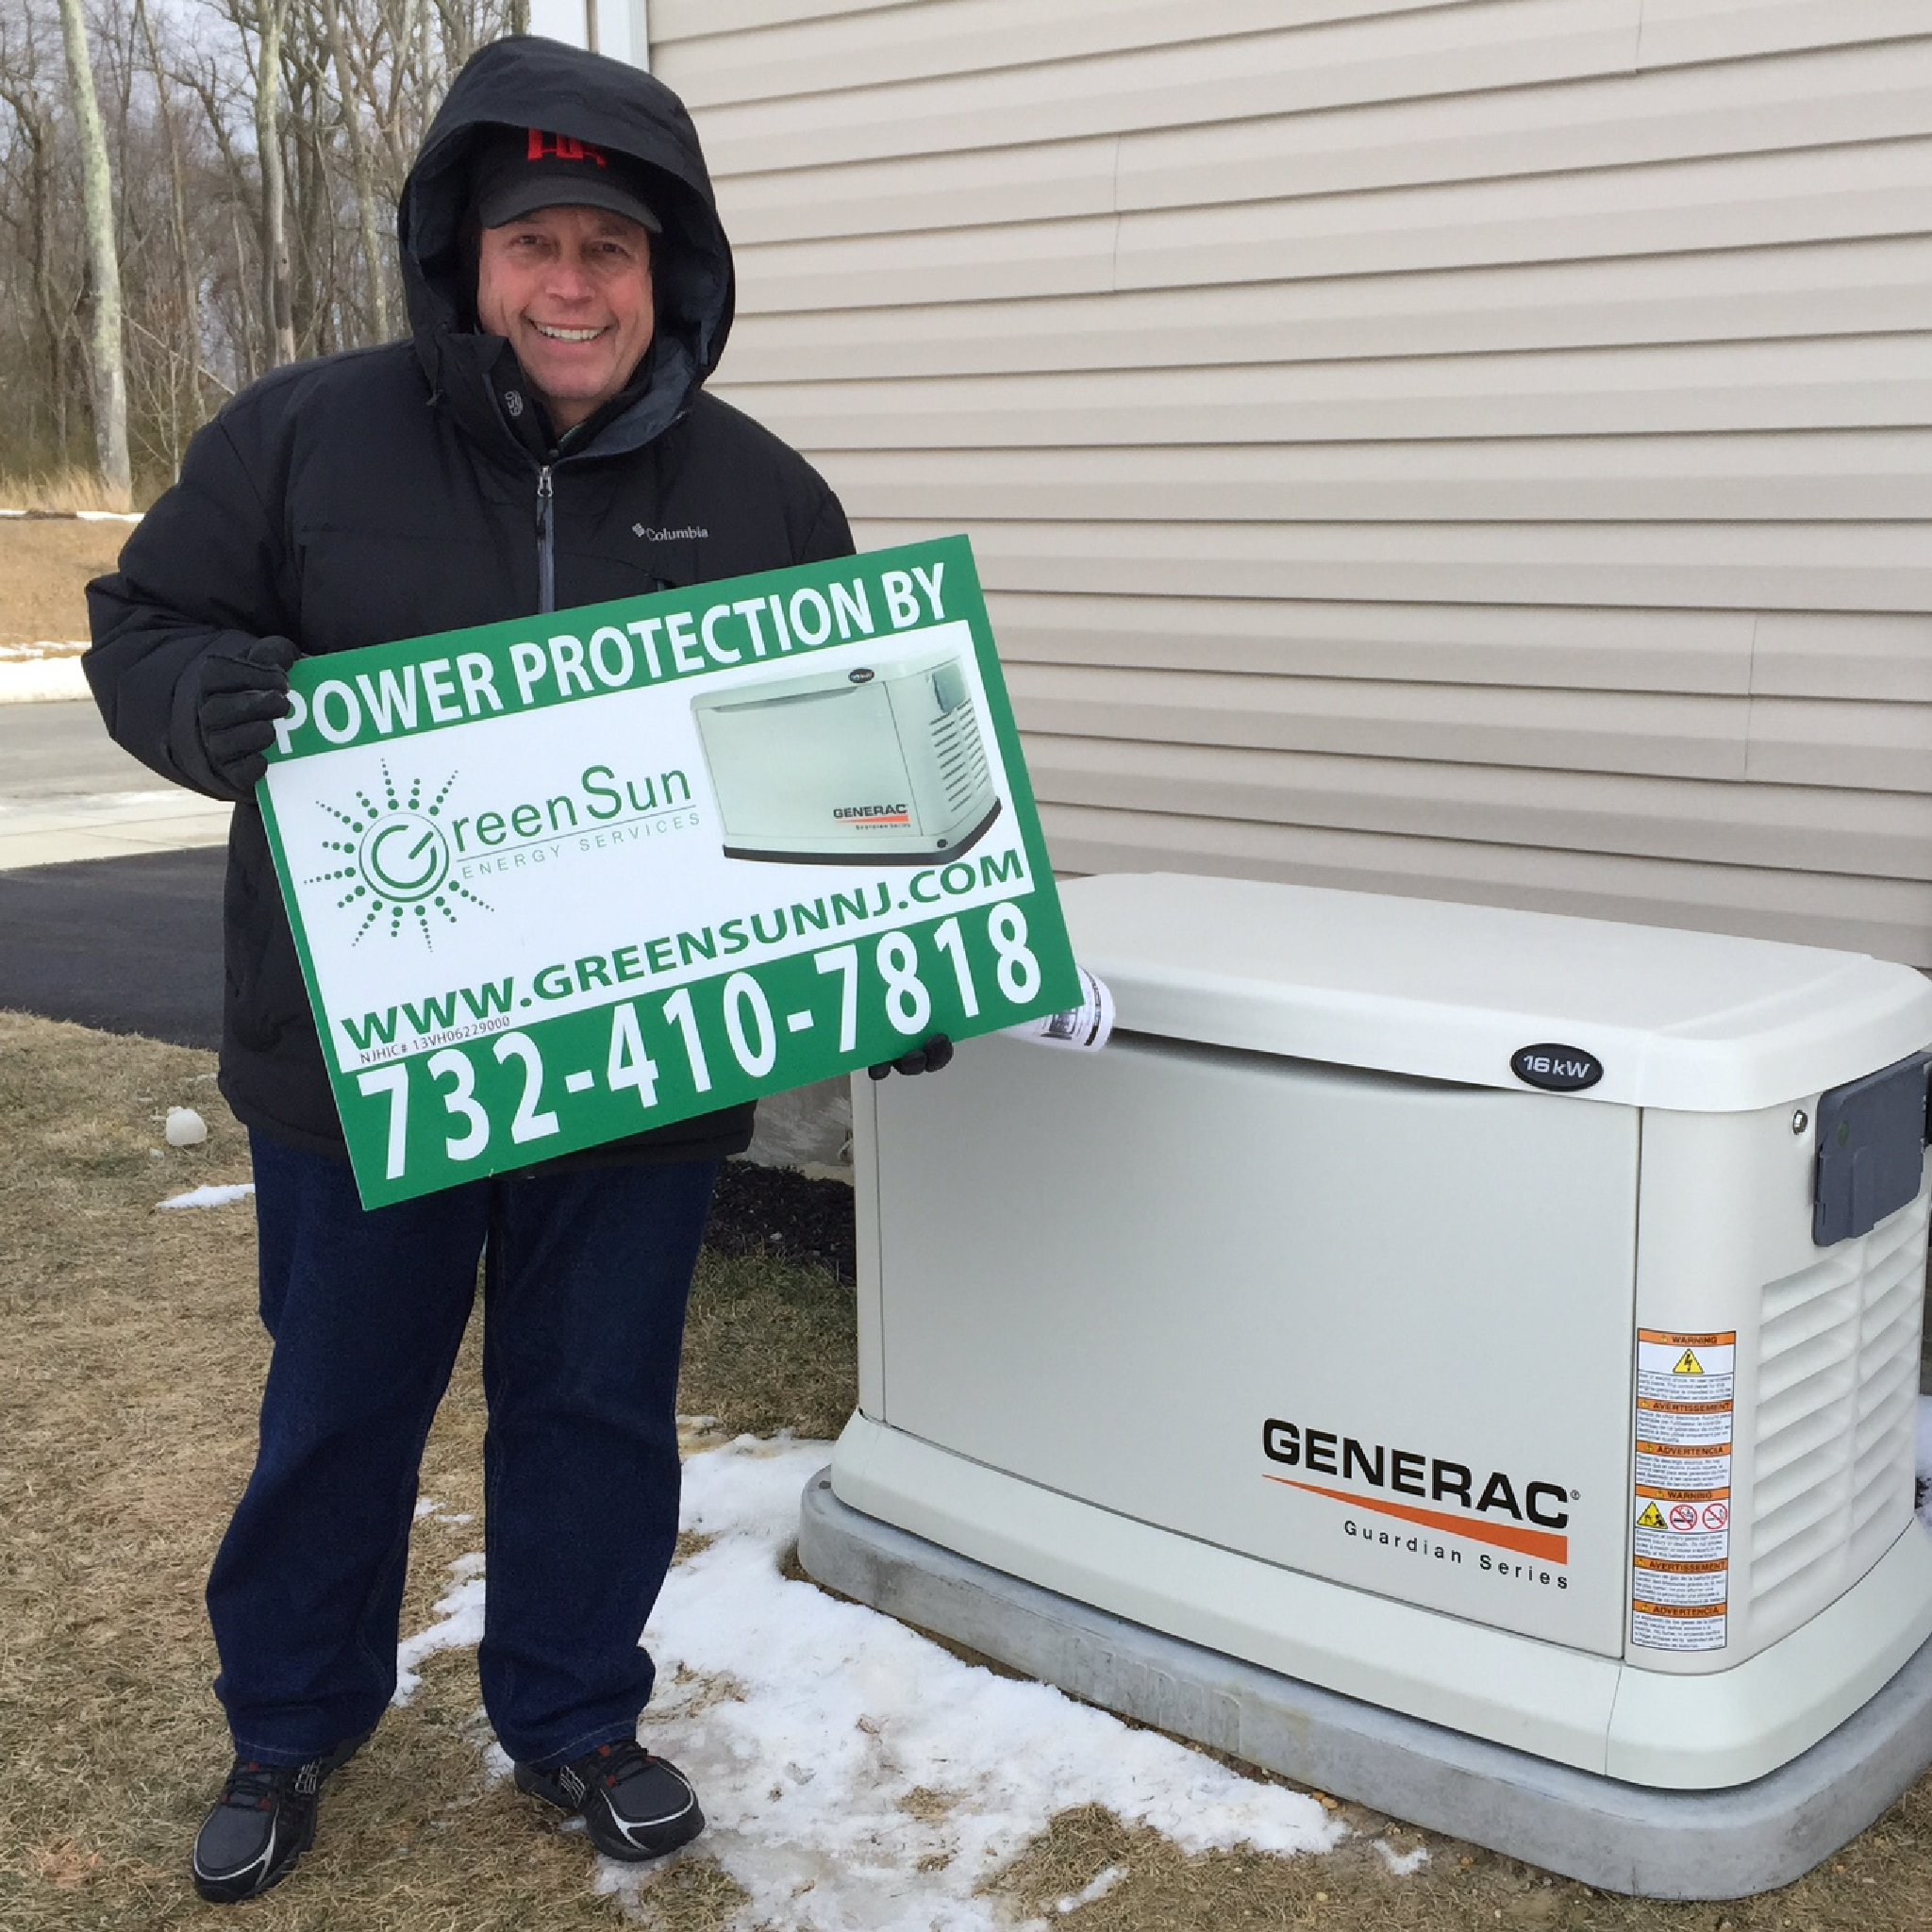 16 kW Generac Generator Installation Review In Farmingdale, NJ